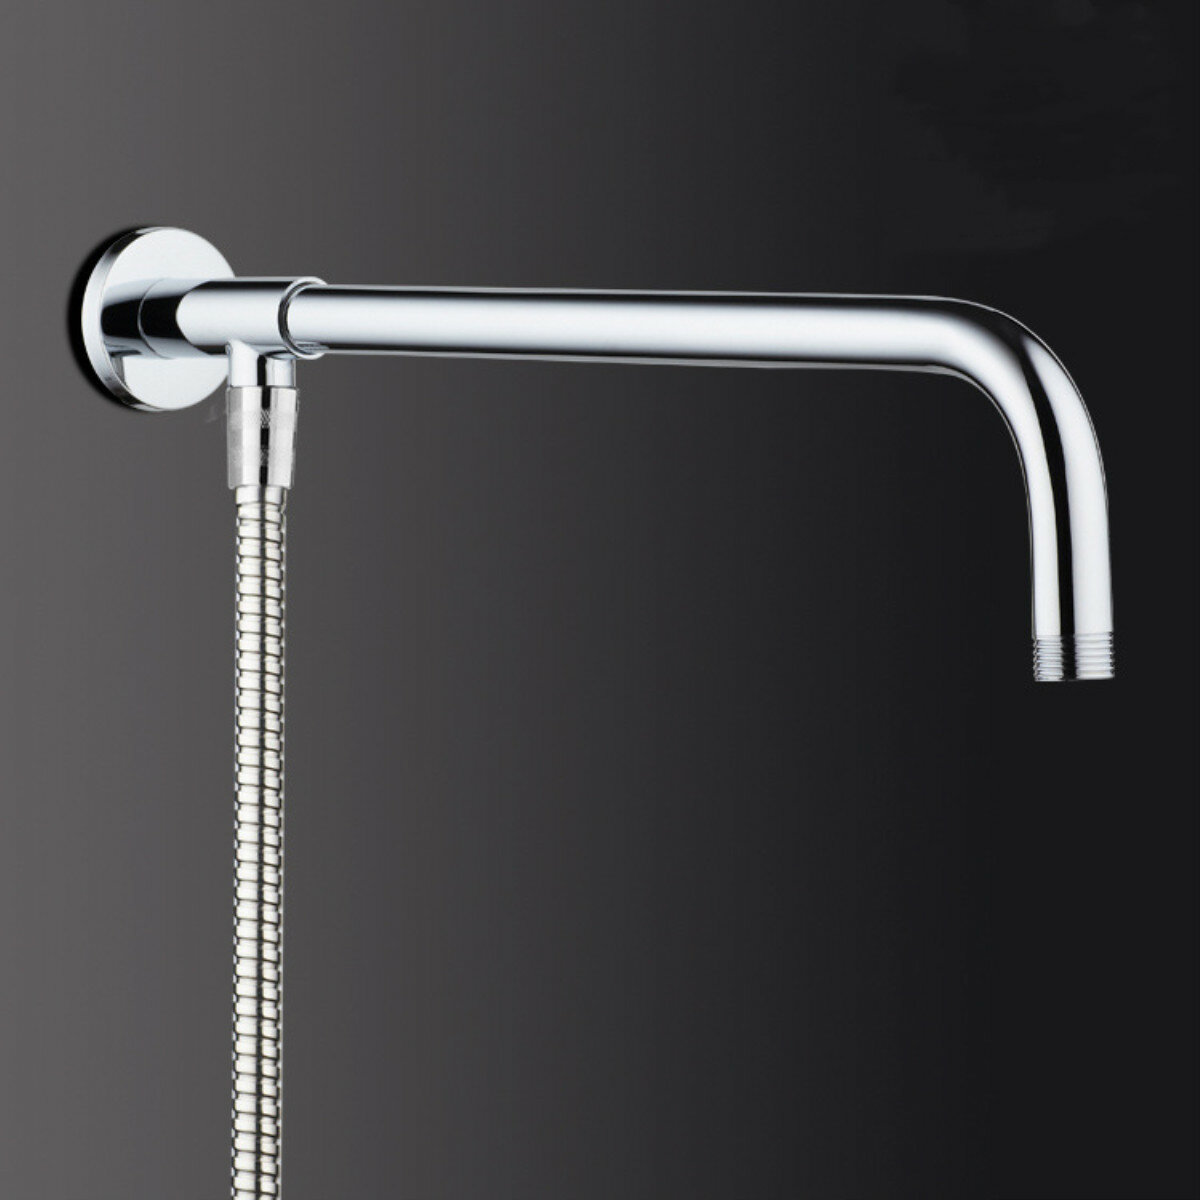 37cm 48cm Rain Shower Head Wall Arm Stainless Steel Extension Water Pipe With Base Mount